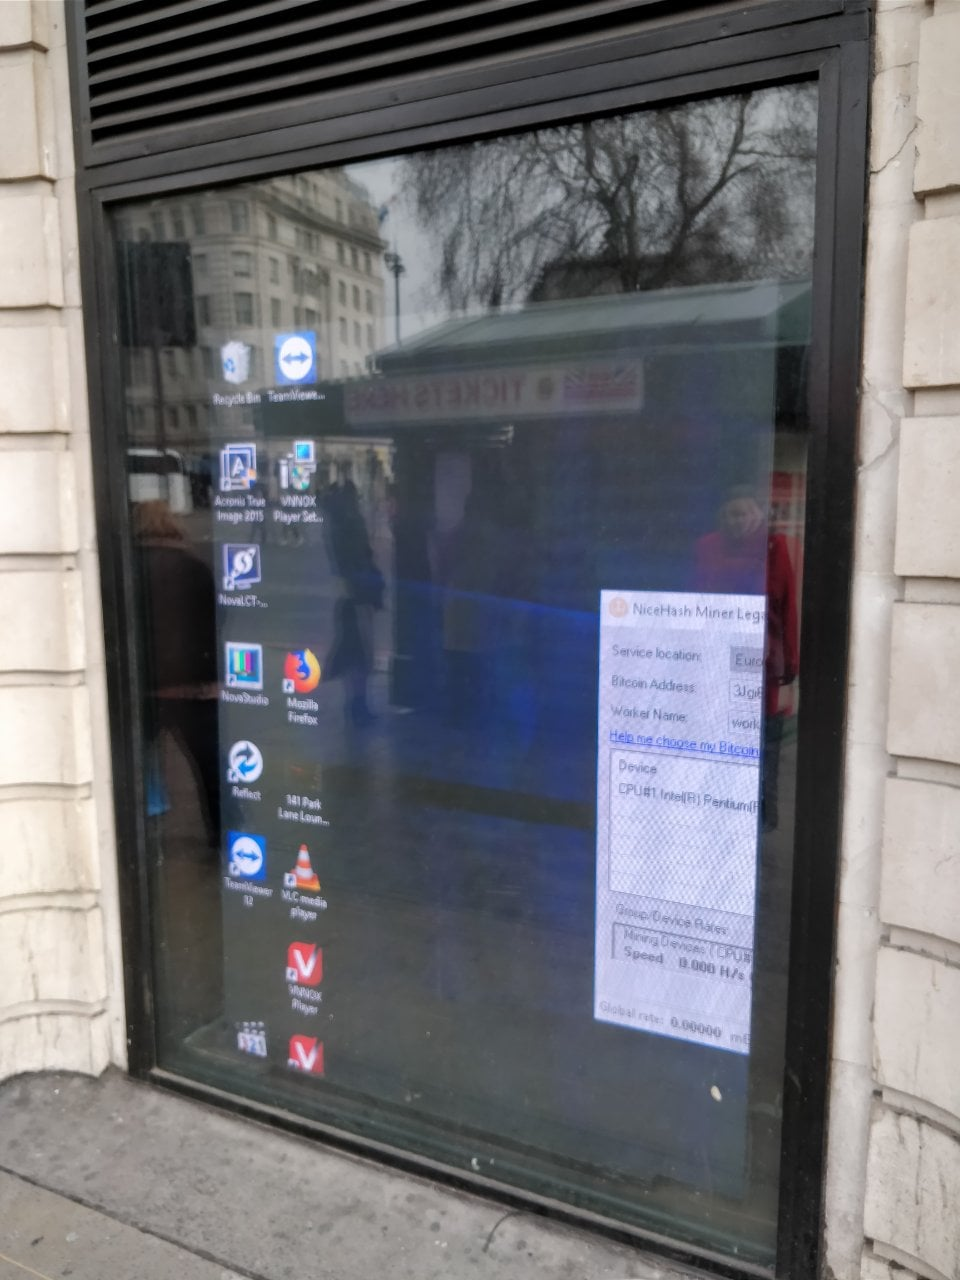 The display shows a windows desktop with a variety of icons. There is a window open